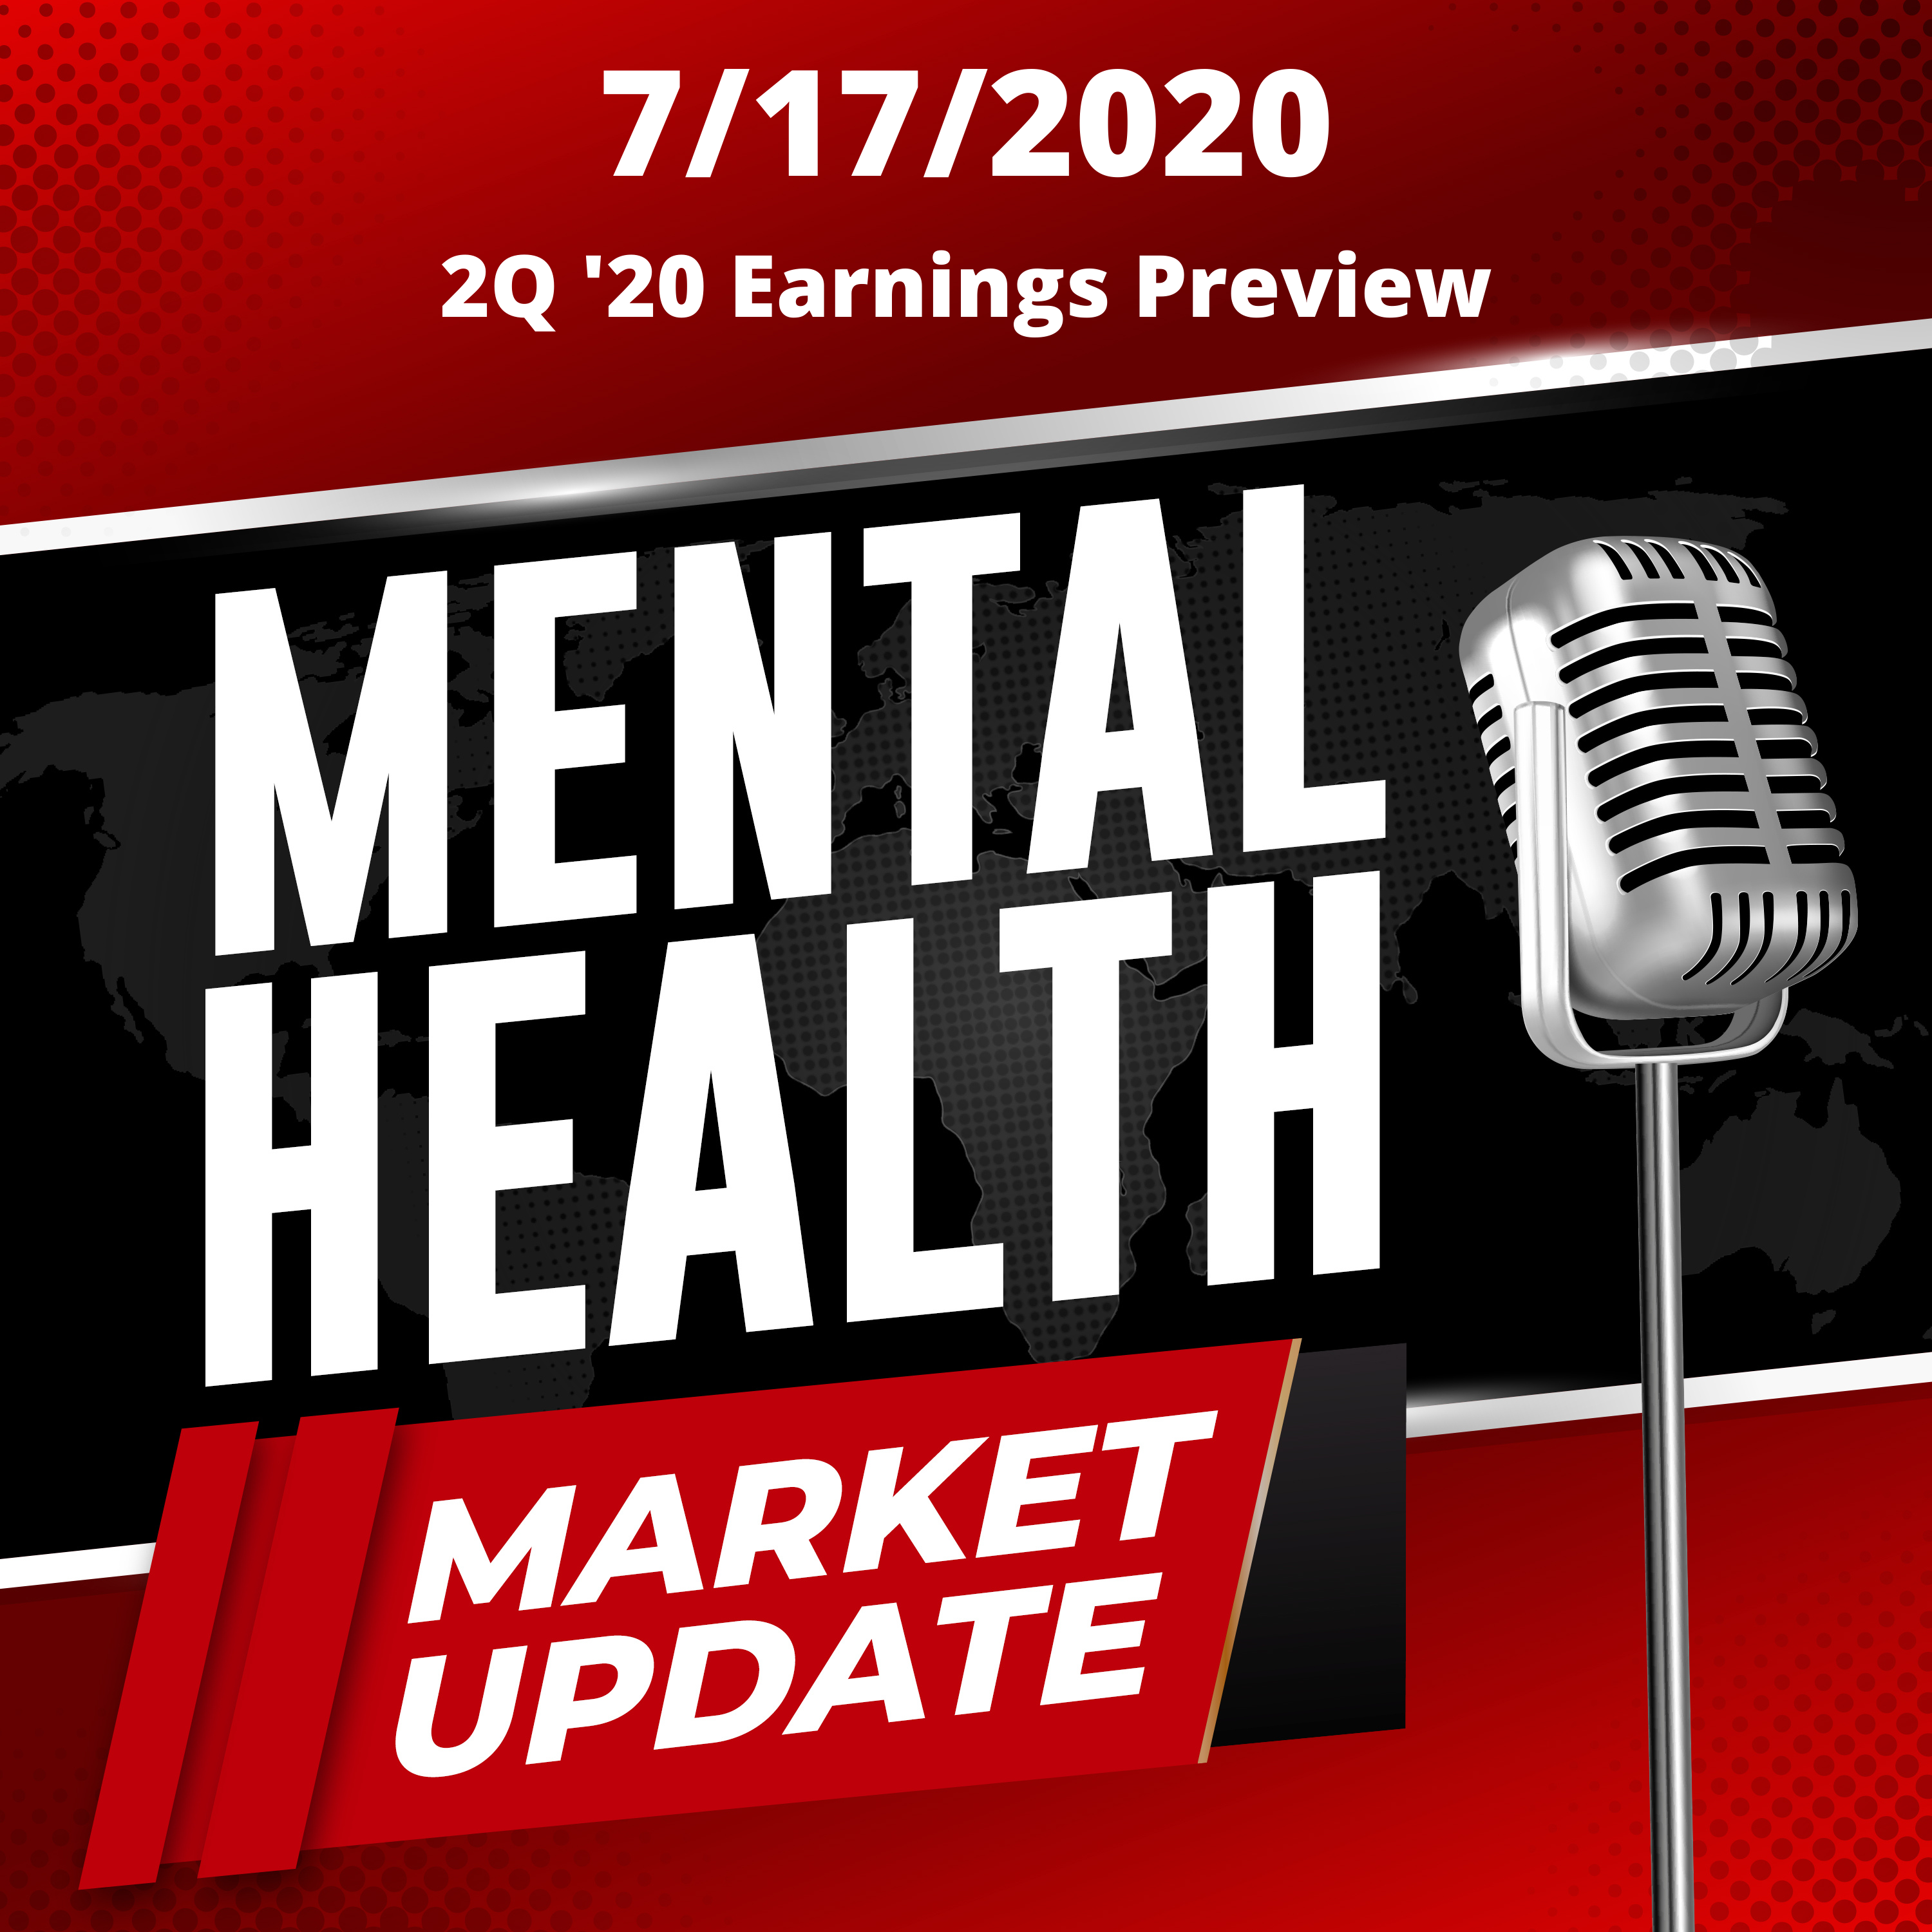 Stigma Podcast - Mental Health - #58 - Market Update 7/17/20: 2Q 2020 Digital Health Earnings Preview with Teladoc, Livongo and One Medical